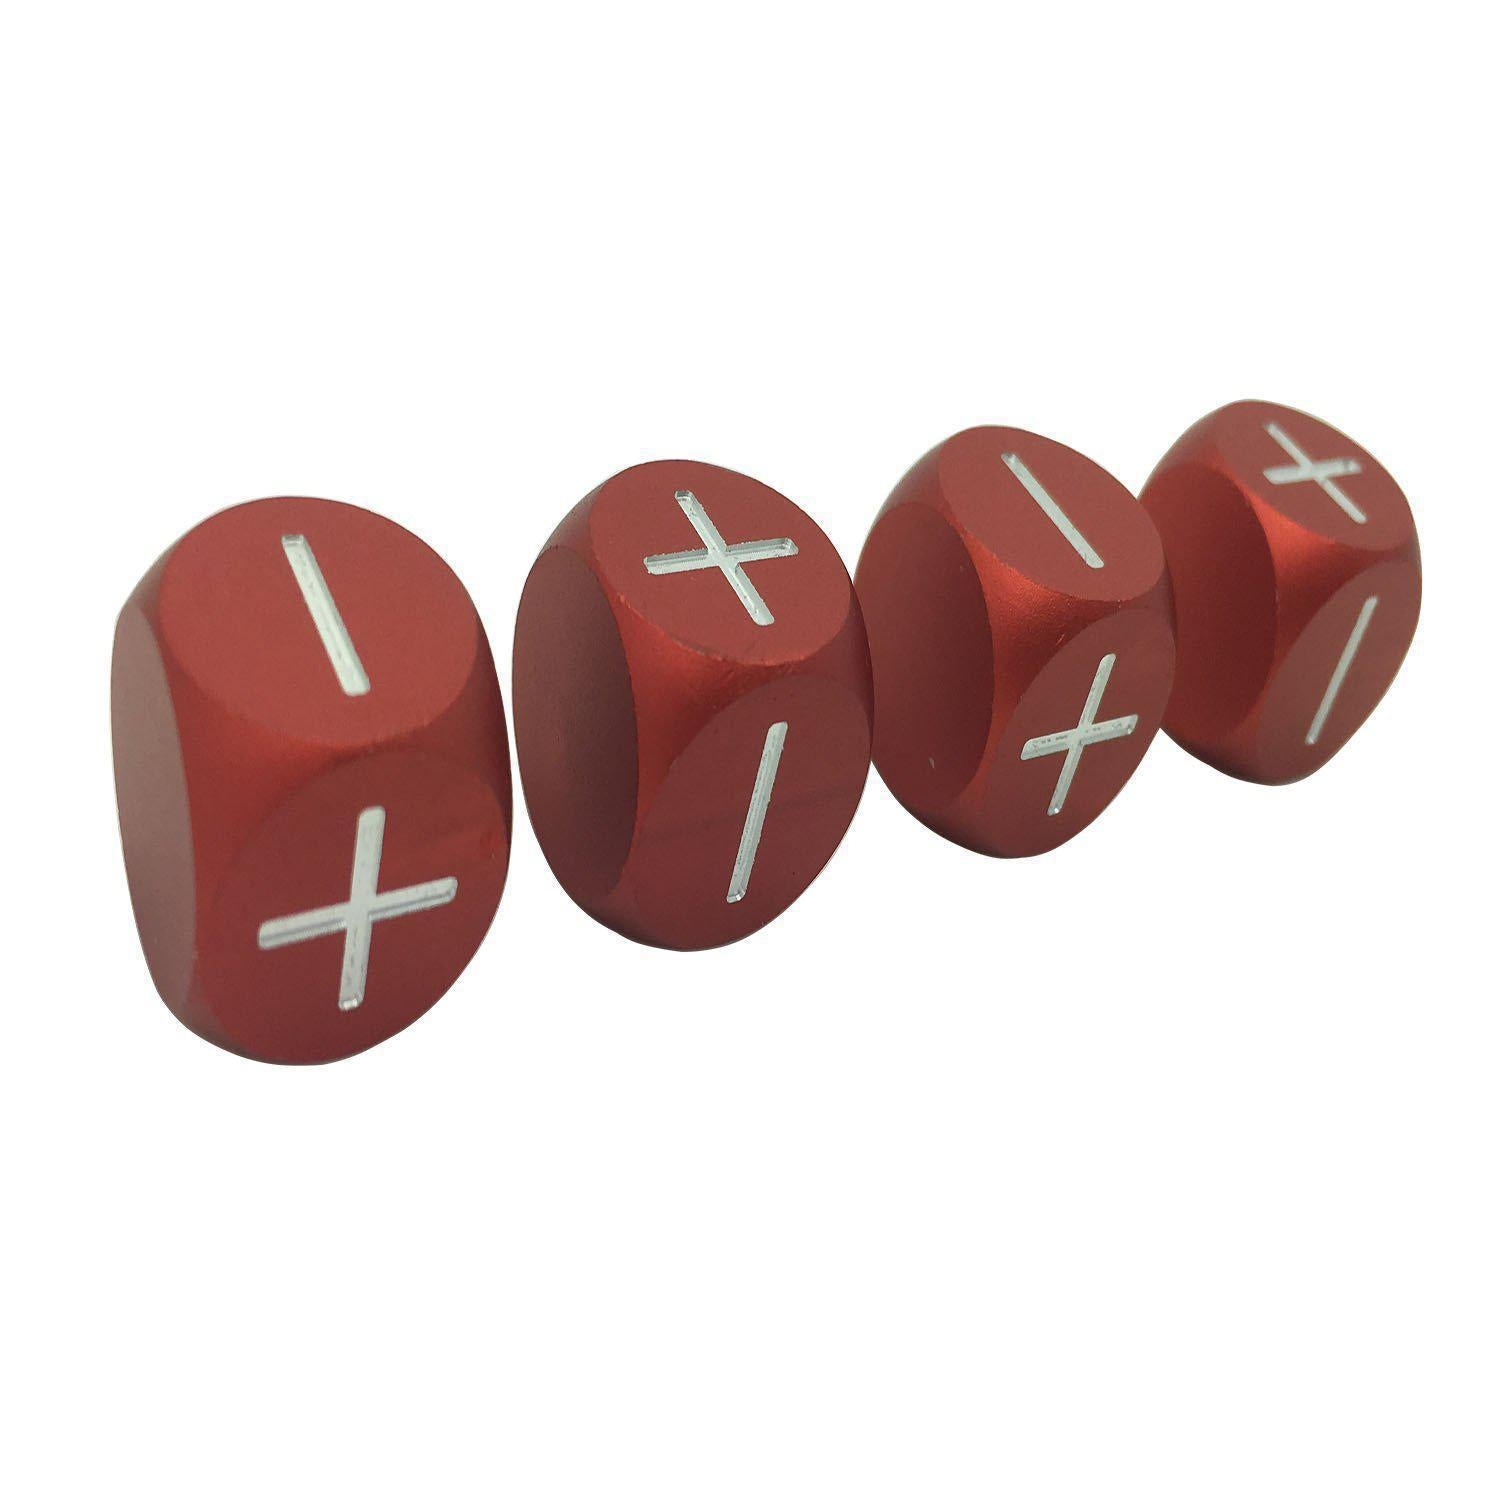 Devil Red - Set of 4 Precision CNC Aluminum Fate / Fudge Dice-Dice-Norse Foundry-DND Dice-Polyhedral Dice-D20-Metal Dice-Precision Dice-Luxury Dice-Dungeons and Dragons-D&D-